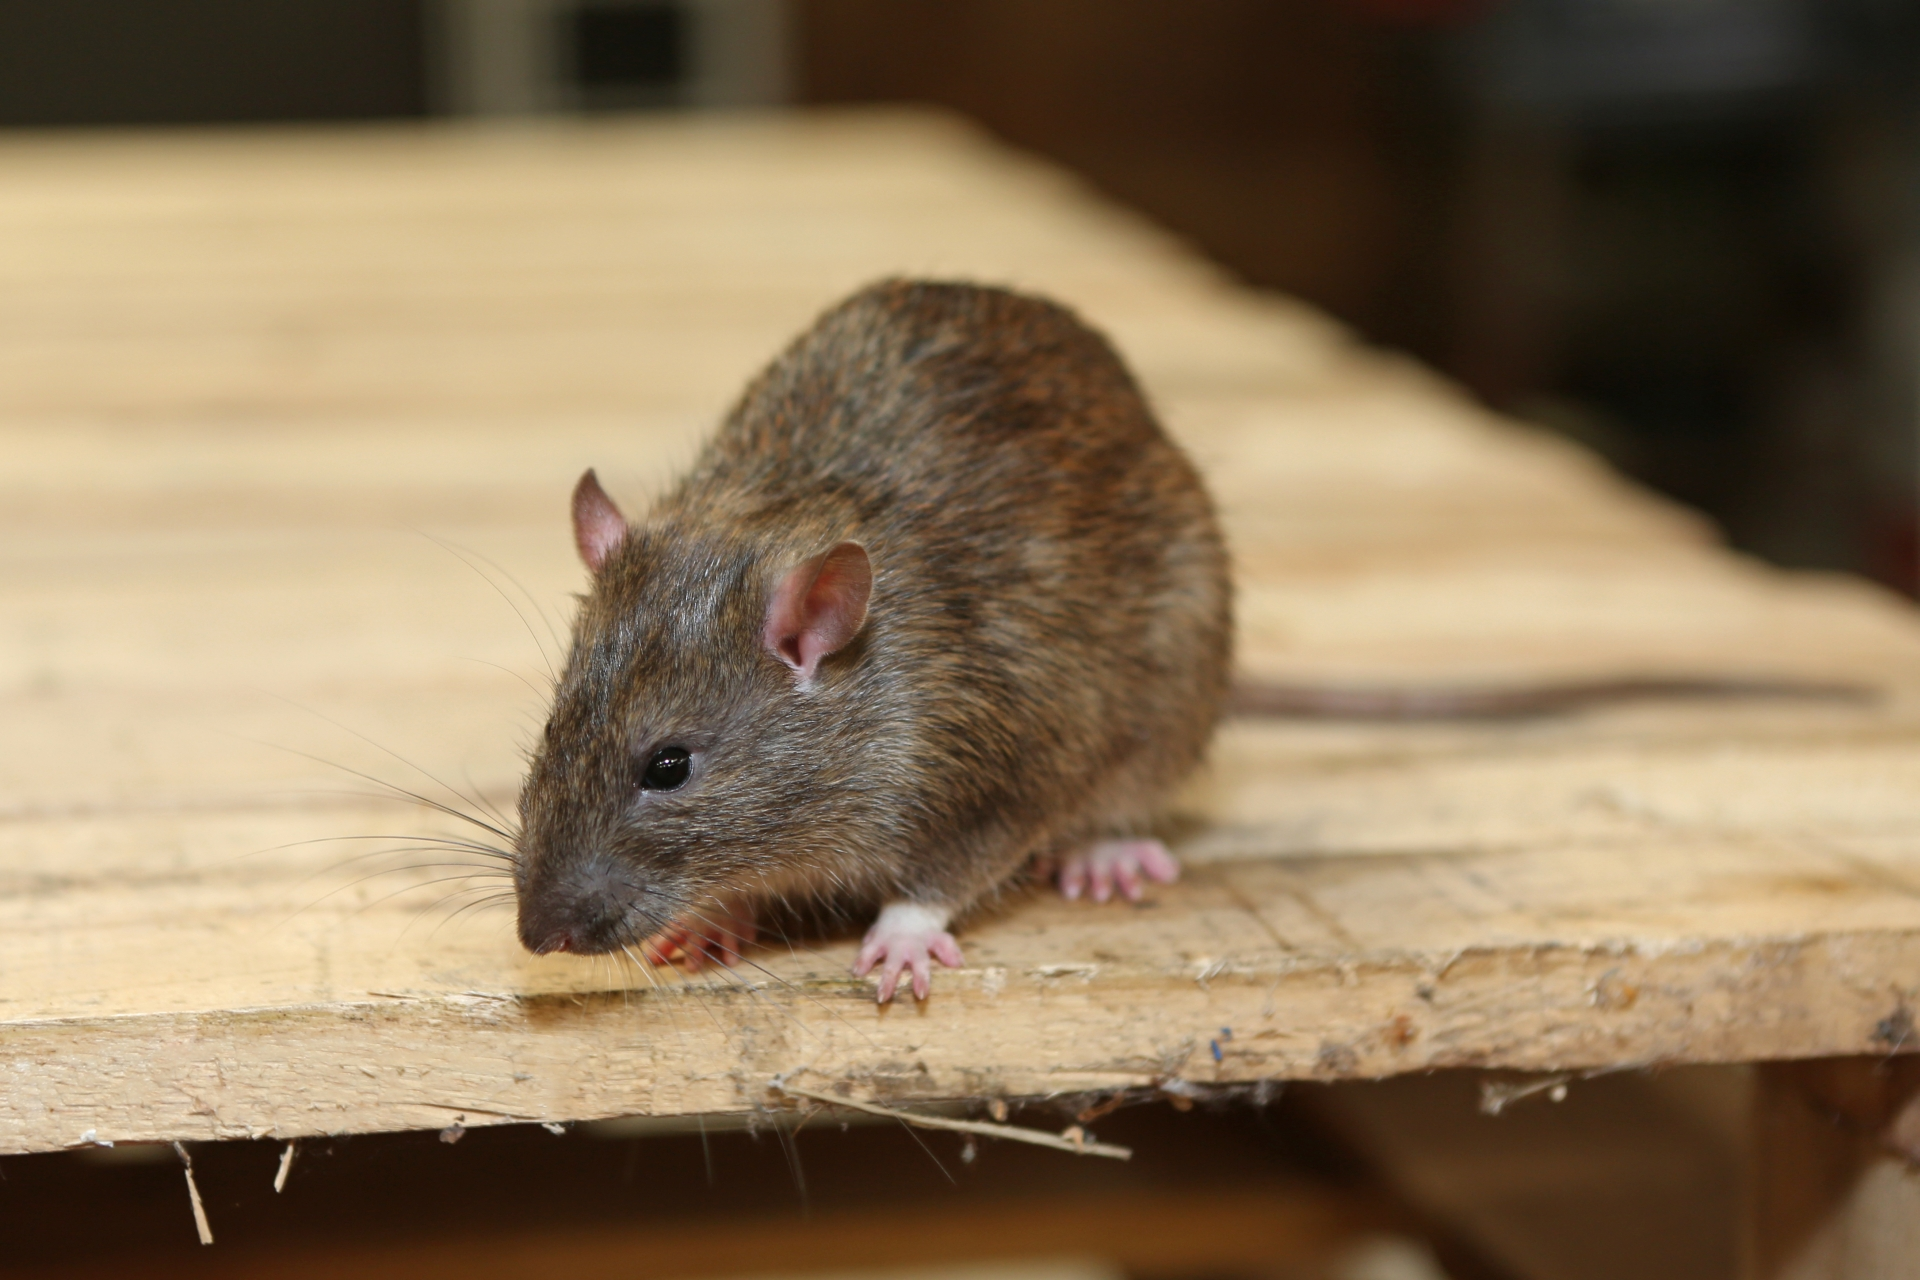 Rat Control, Pest Control in Rickmansworth, Chorleywood, Croxley Green, WD3. Call Now 020 8166 9746